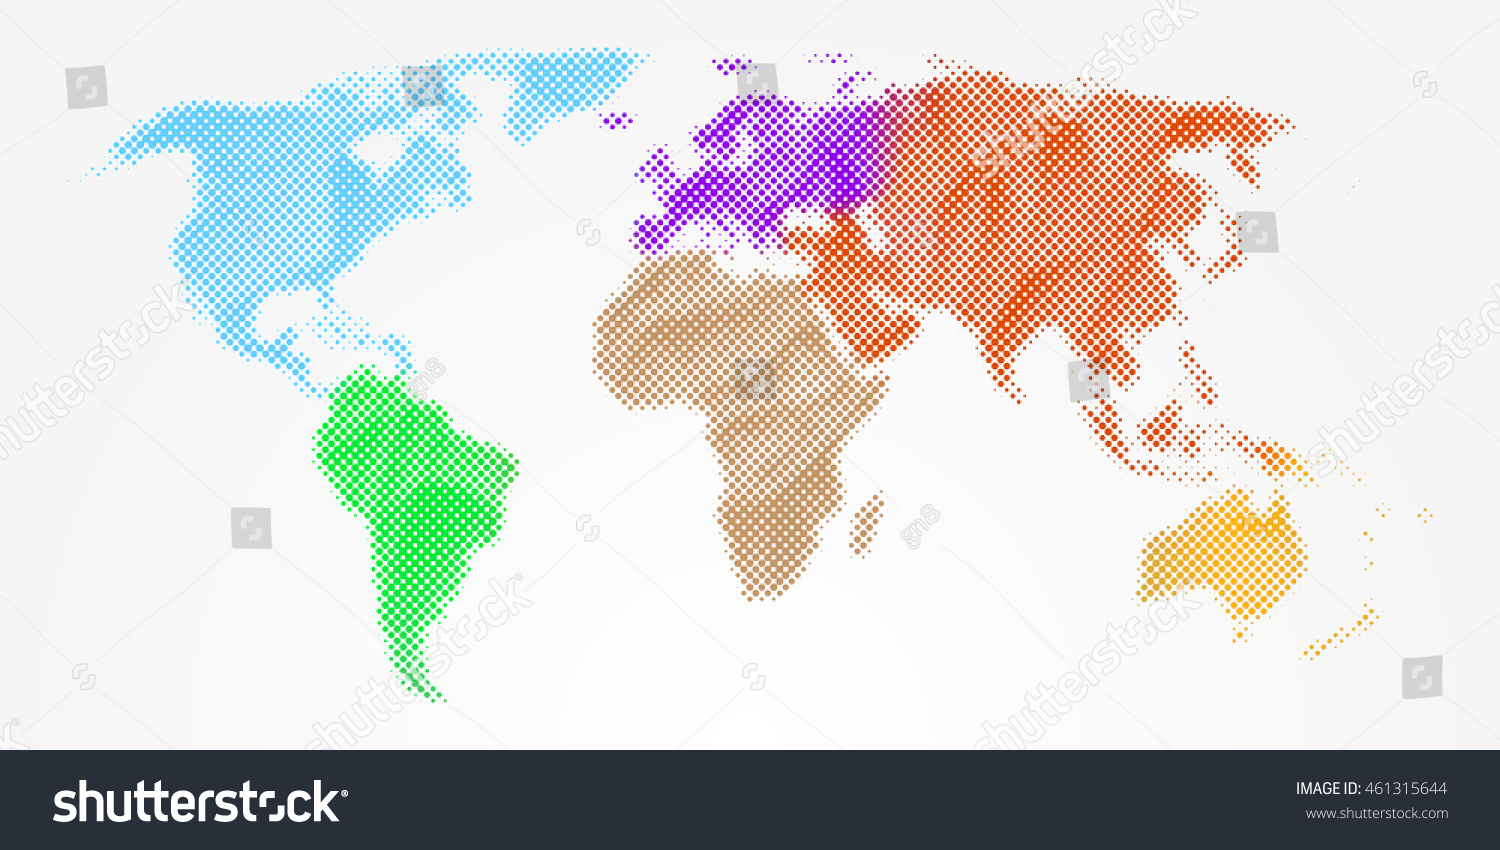 Abstract colorful bright halftone world map stock vector 461315644 abstract colorful bright halftone world map different continents vector isolated eps 10 gumiabroncs Images